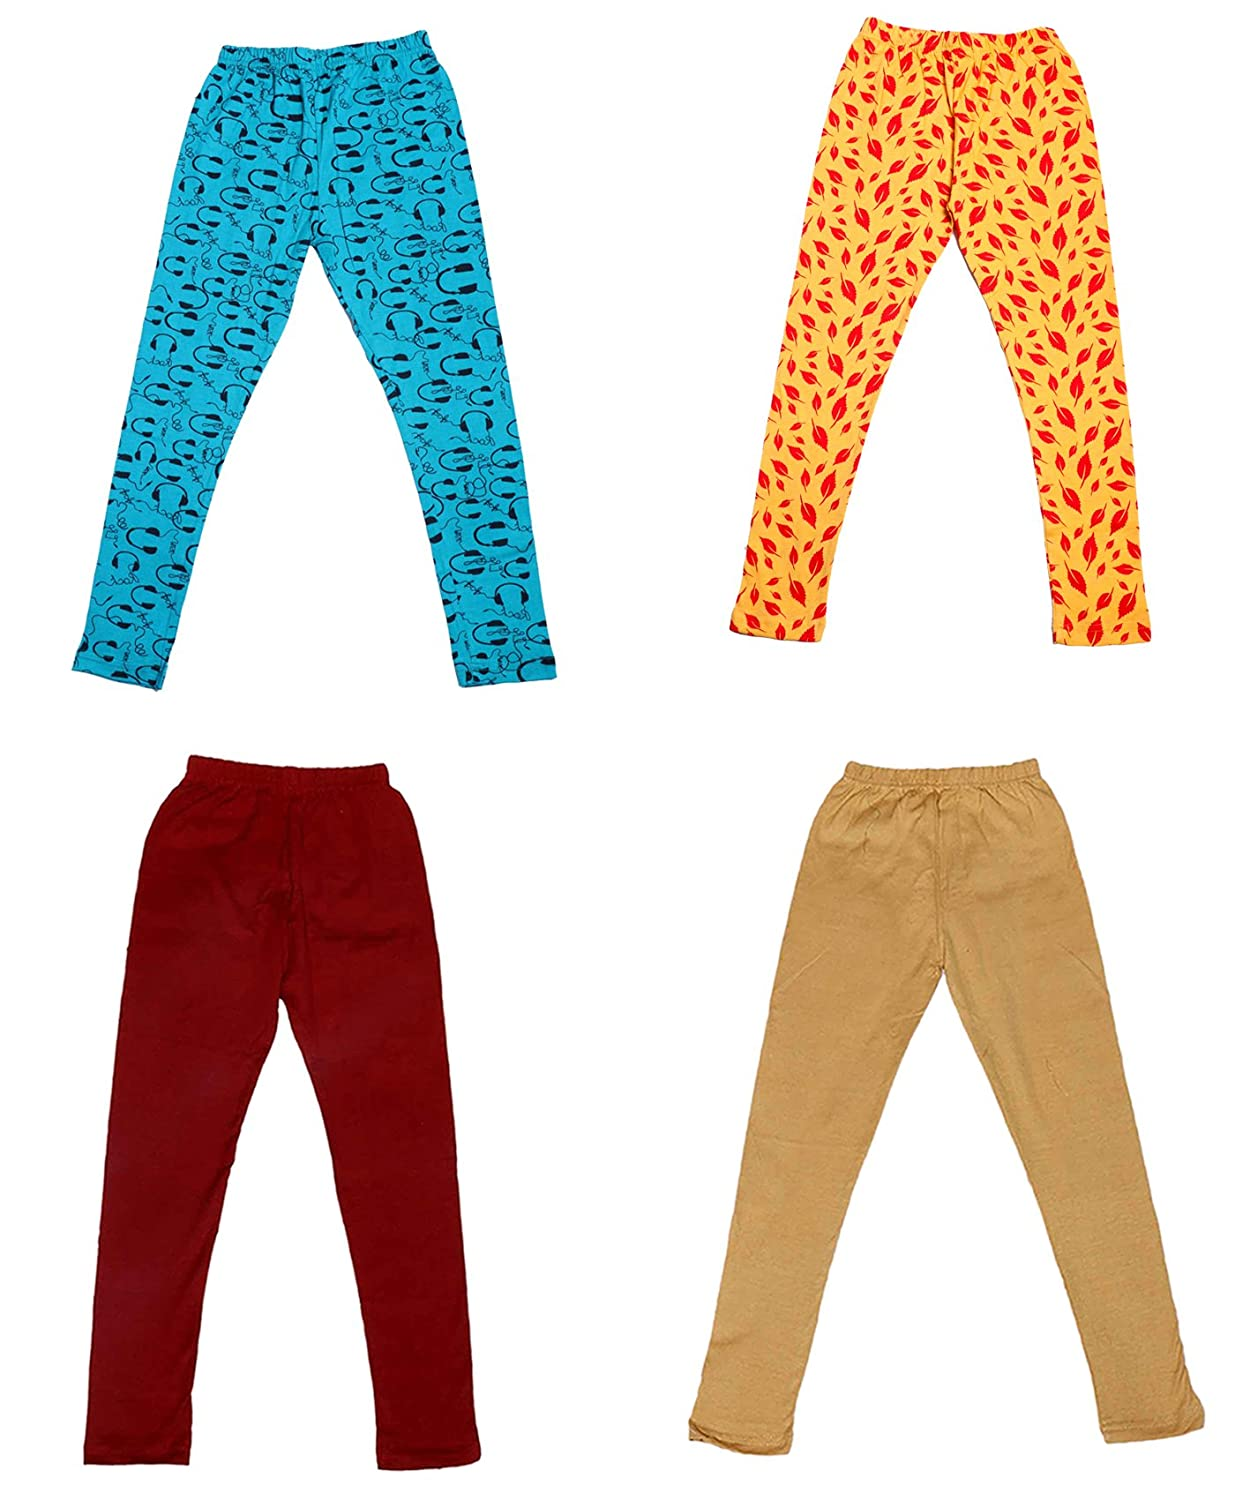 and 2 Cotton Printed Legging Pants /_Multicolor/_Size-11-12 Years/_71400011718-IW-P4-34 Indistar Girls 2 Cotton Solid Legging Pants Pack Of 4